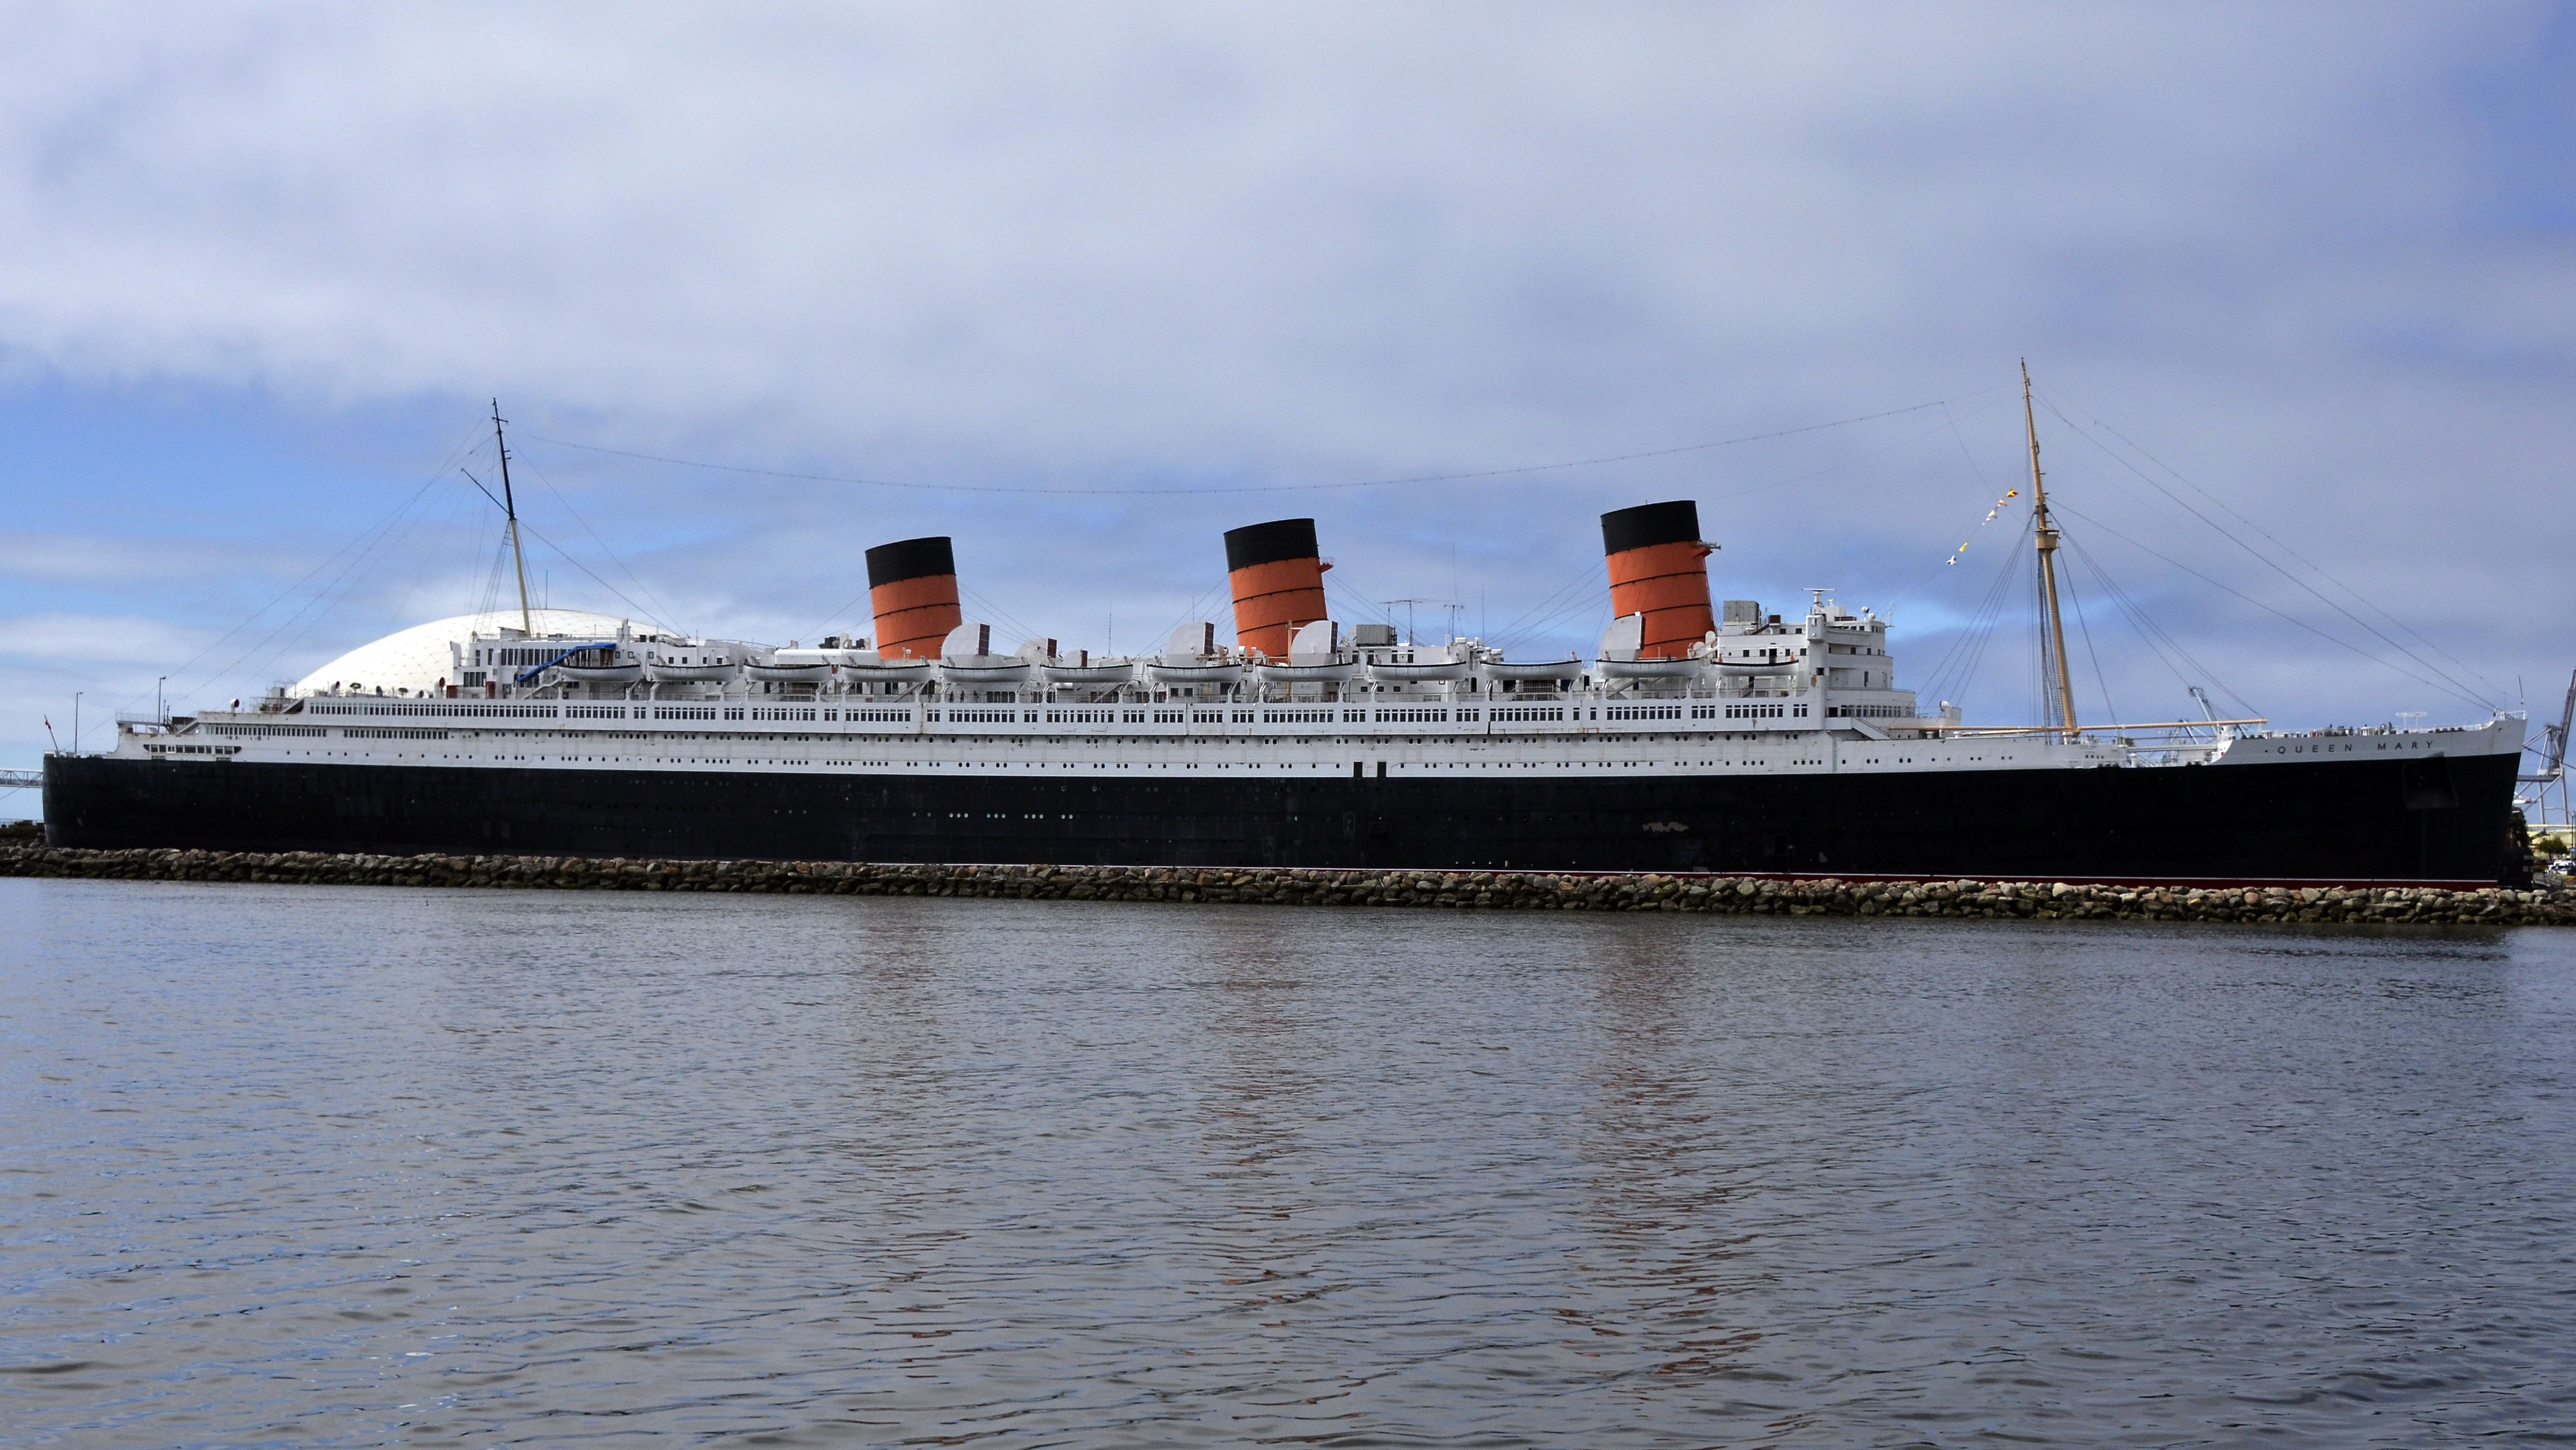 11 Facts about the R.M.S. Queen Mary | Mental Floss